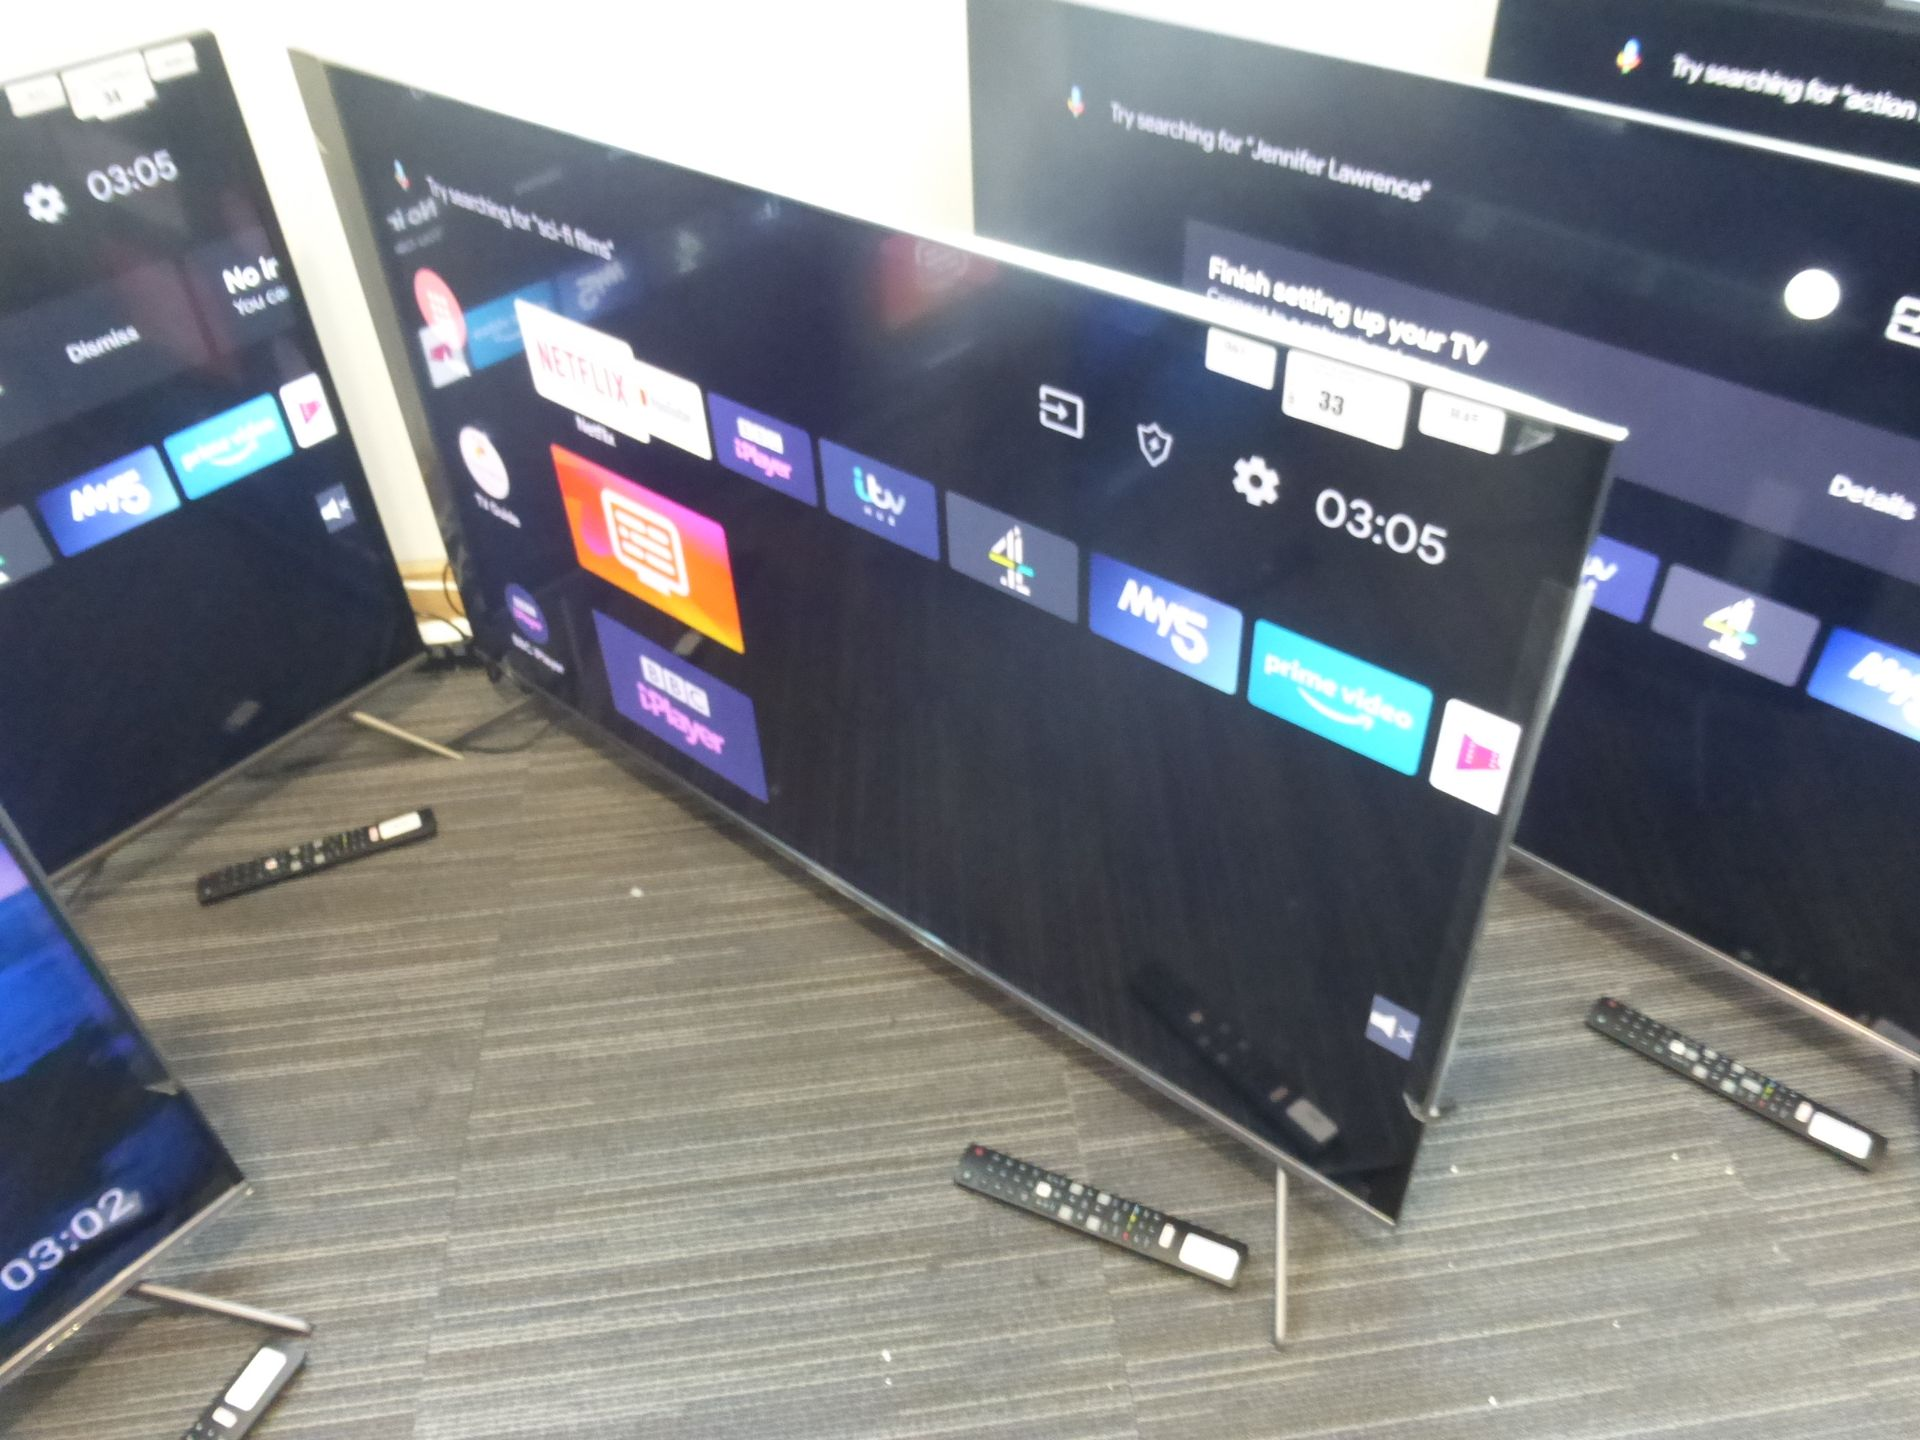 TCL 50'' 4K TV Model: 50C715K, includes remote (R45) and box (B61) Screen has no visible damage,